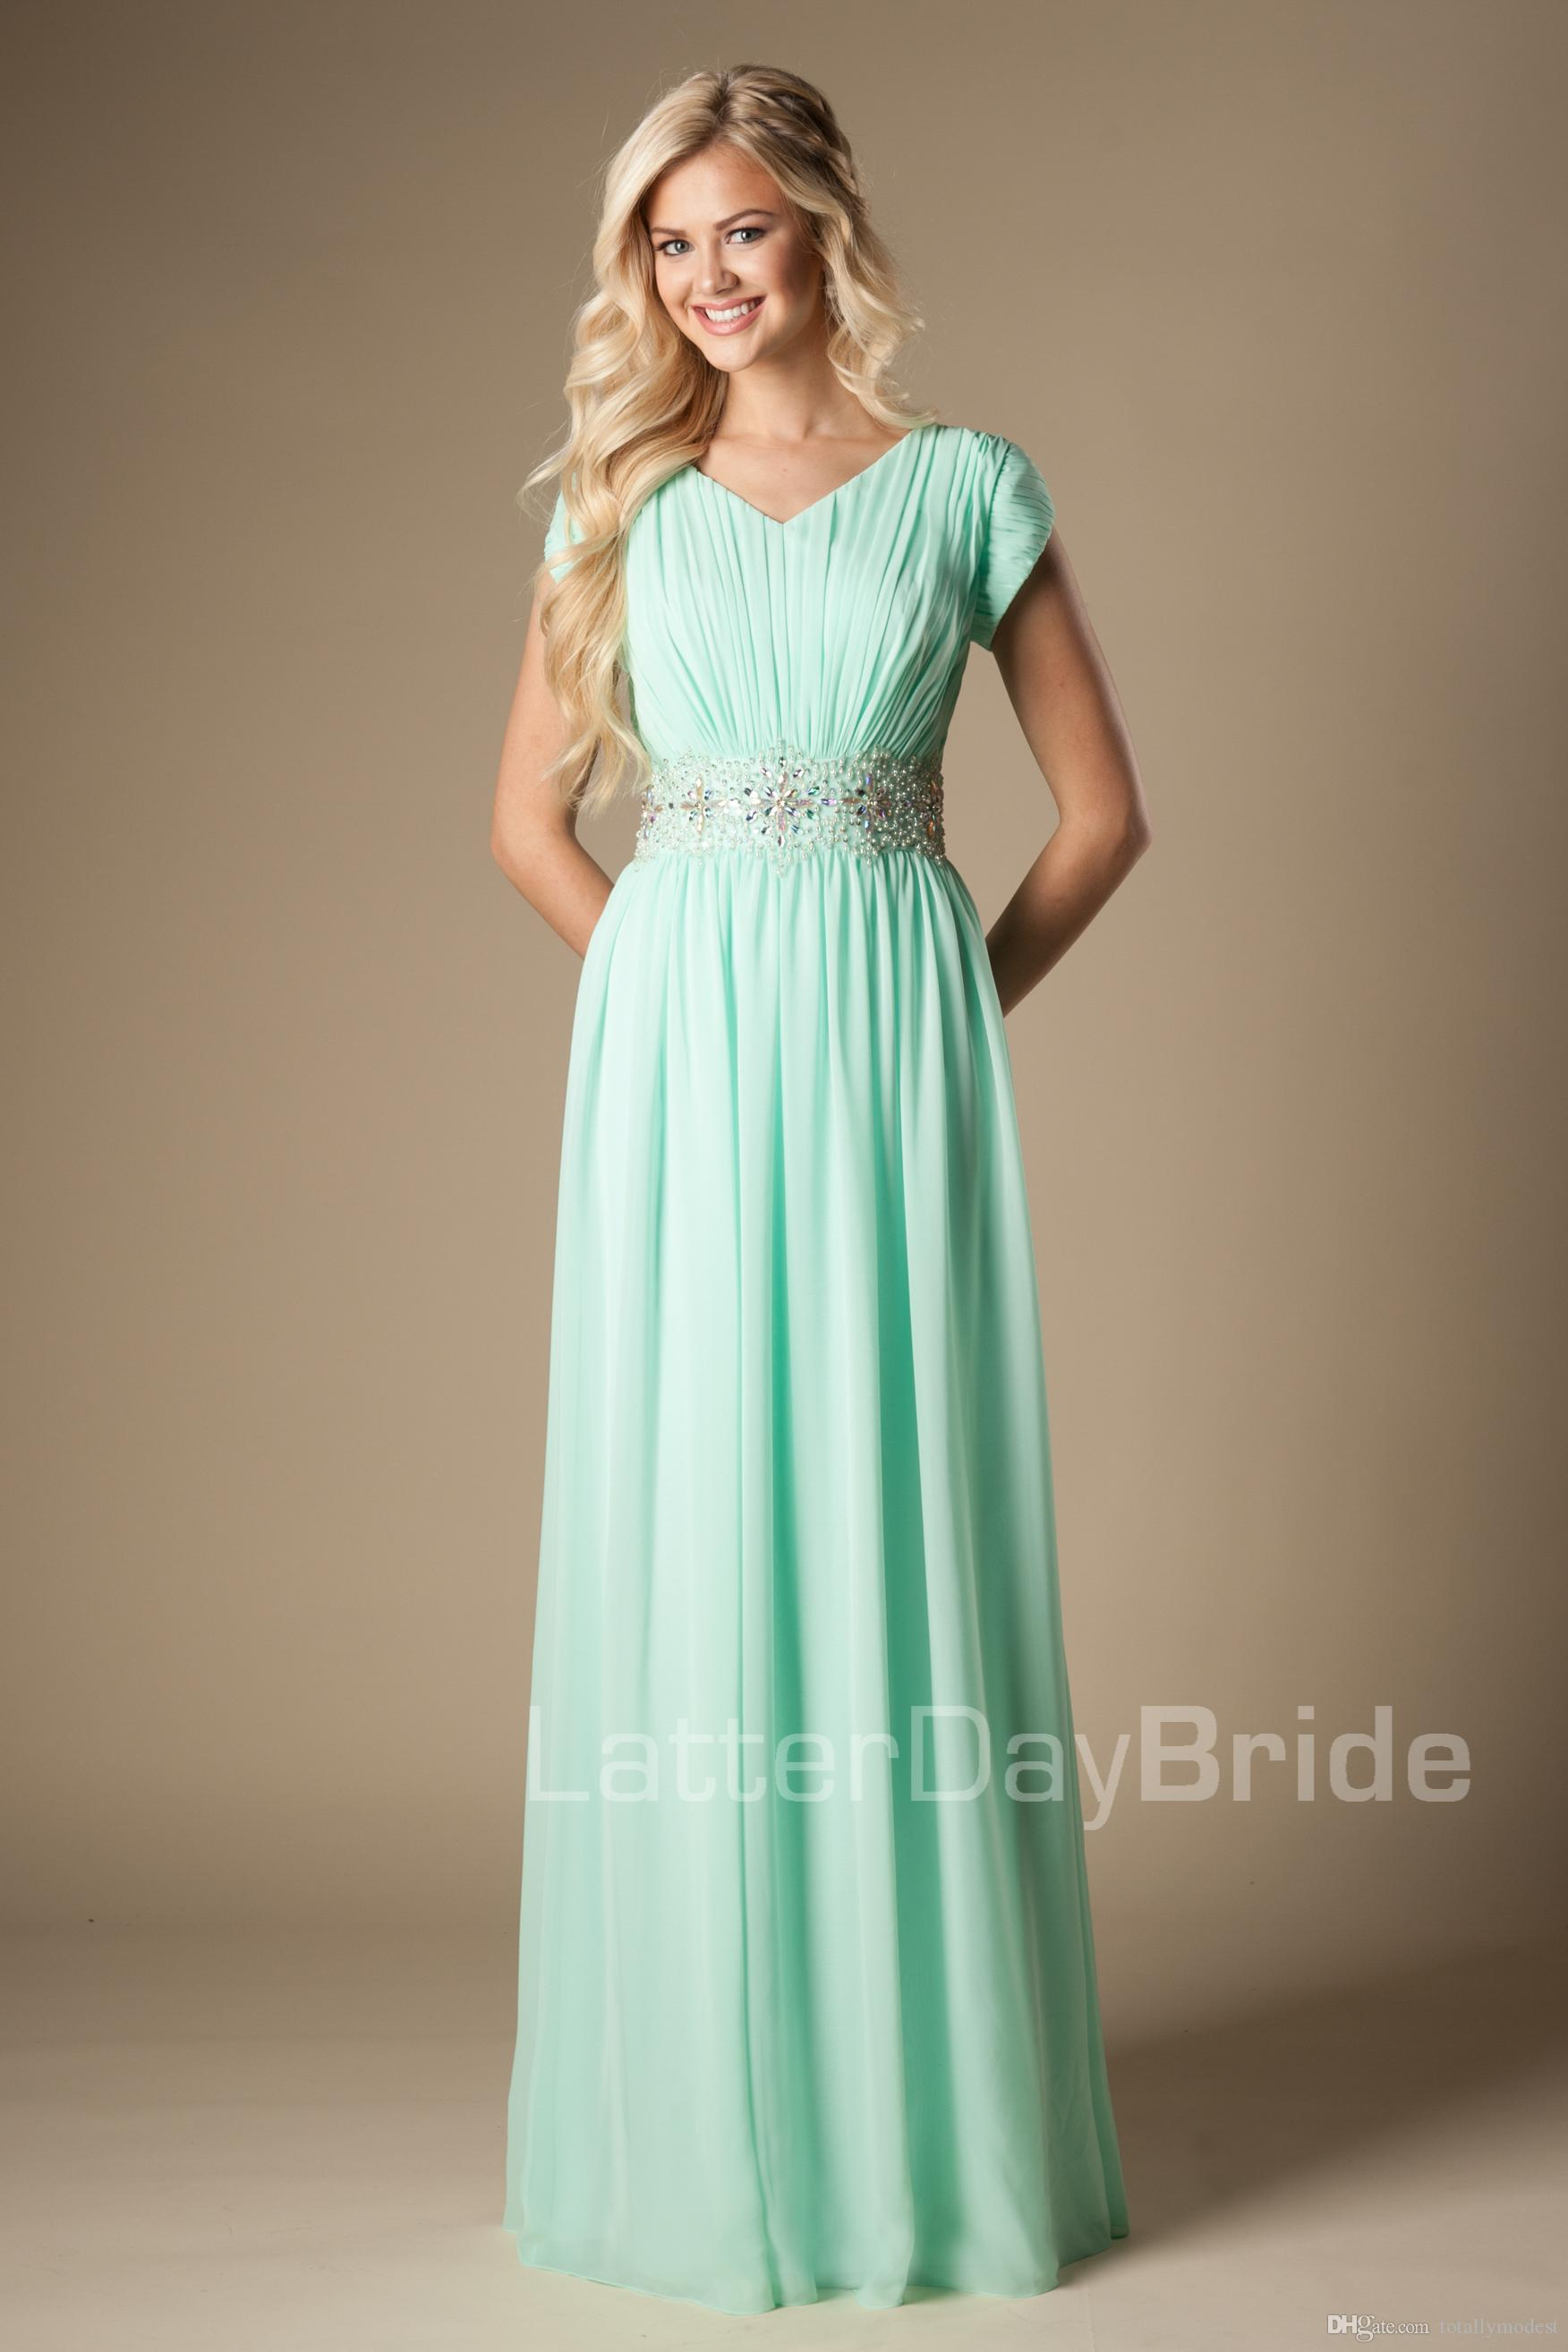 Mint Beaded Chiffon Modest Bridesmaid Dresses With Cap Sleeves Long A-line Wedding Guests Dresses Formal Evening Maids of Honor Dresses